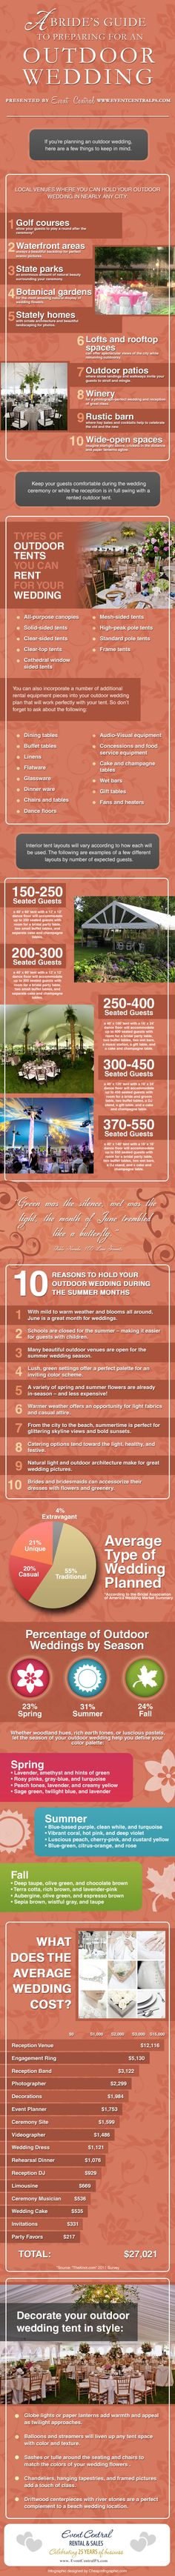 wedding infographic for outdoor #weddings